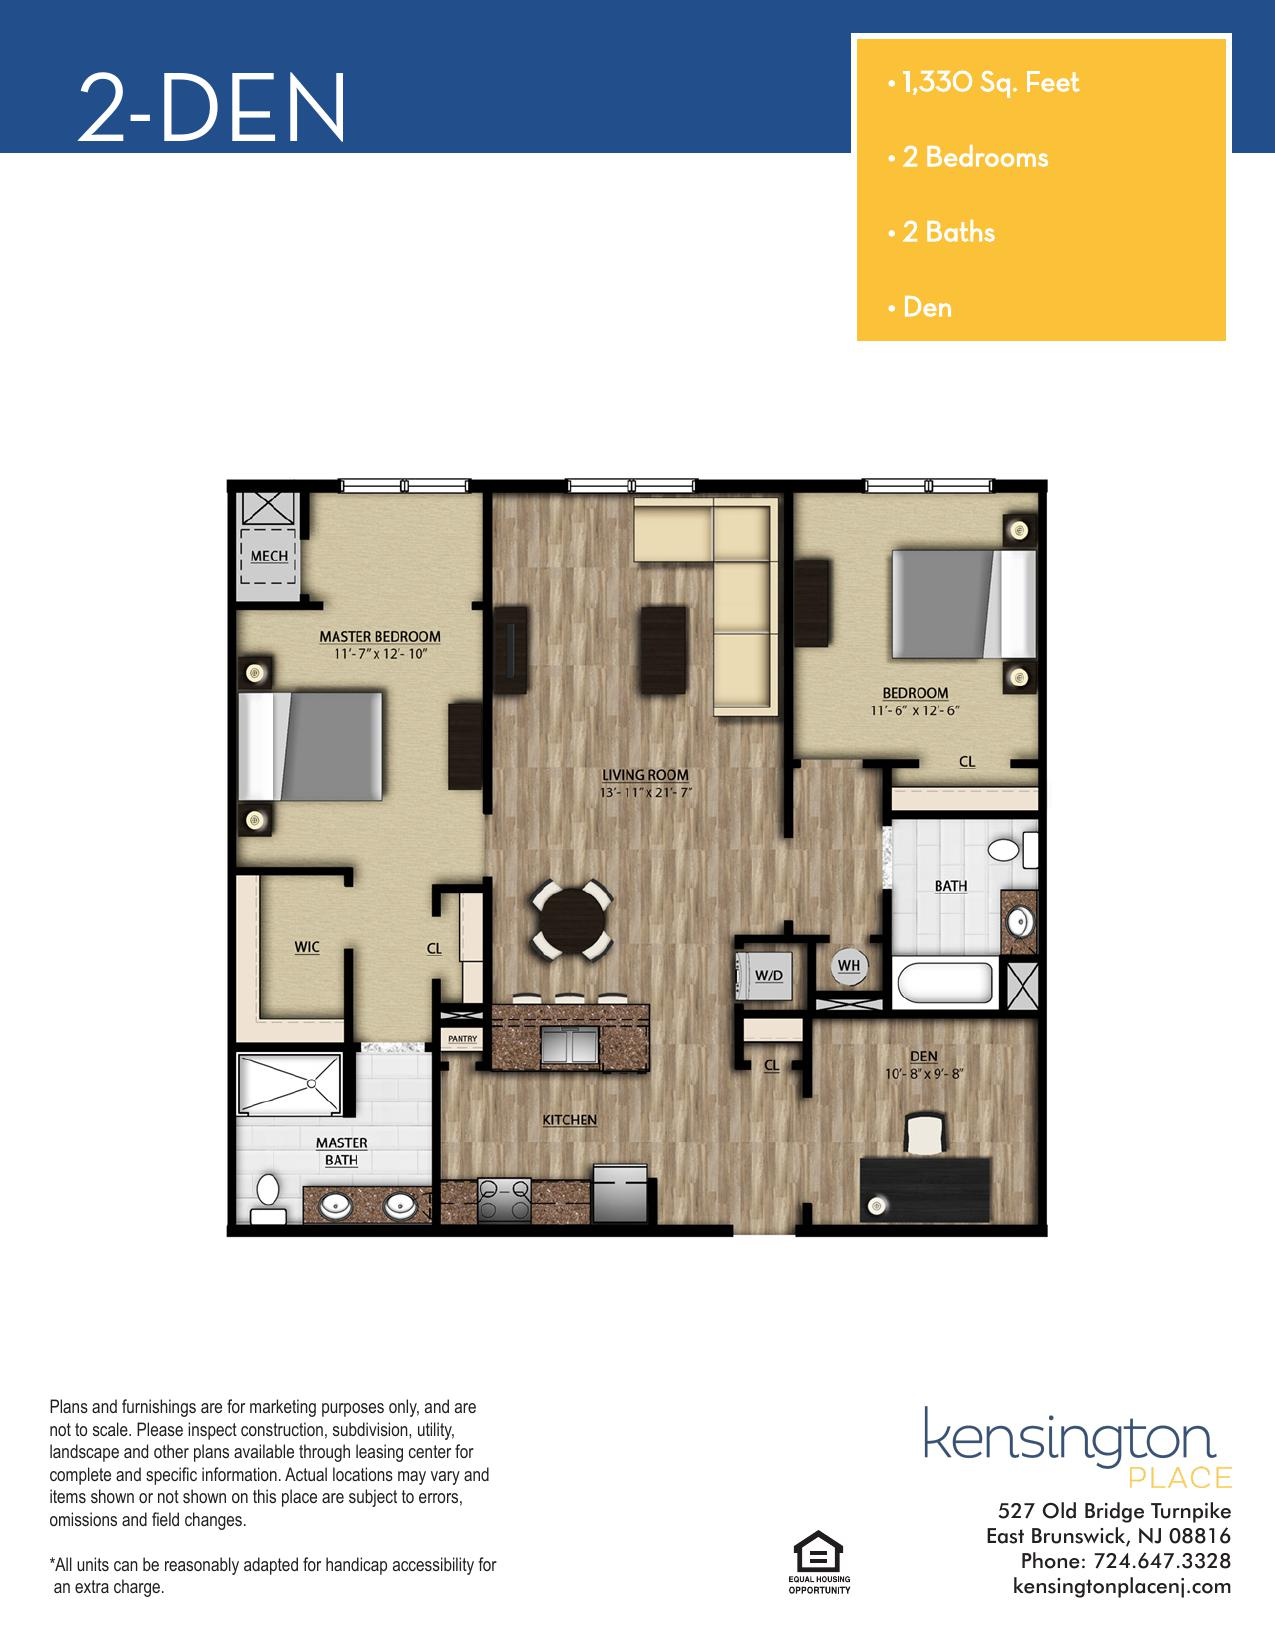 2 DEN Floor Plan